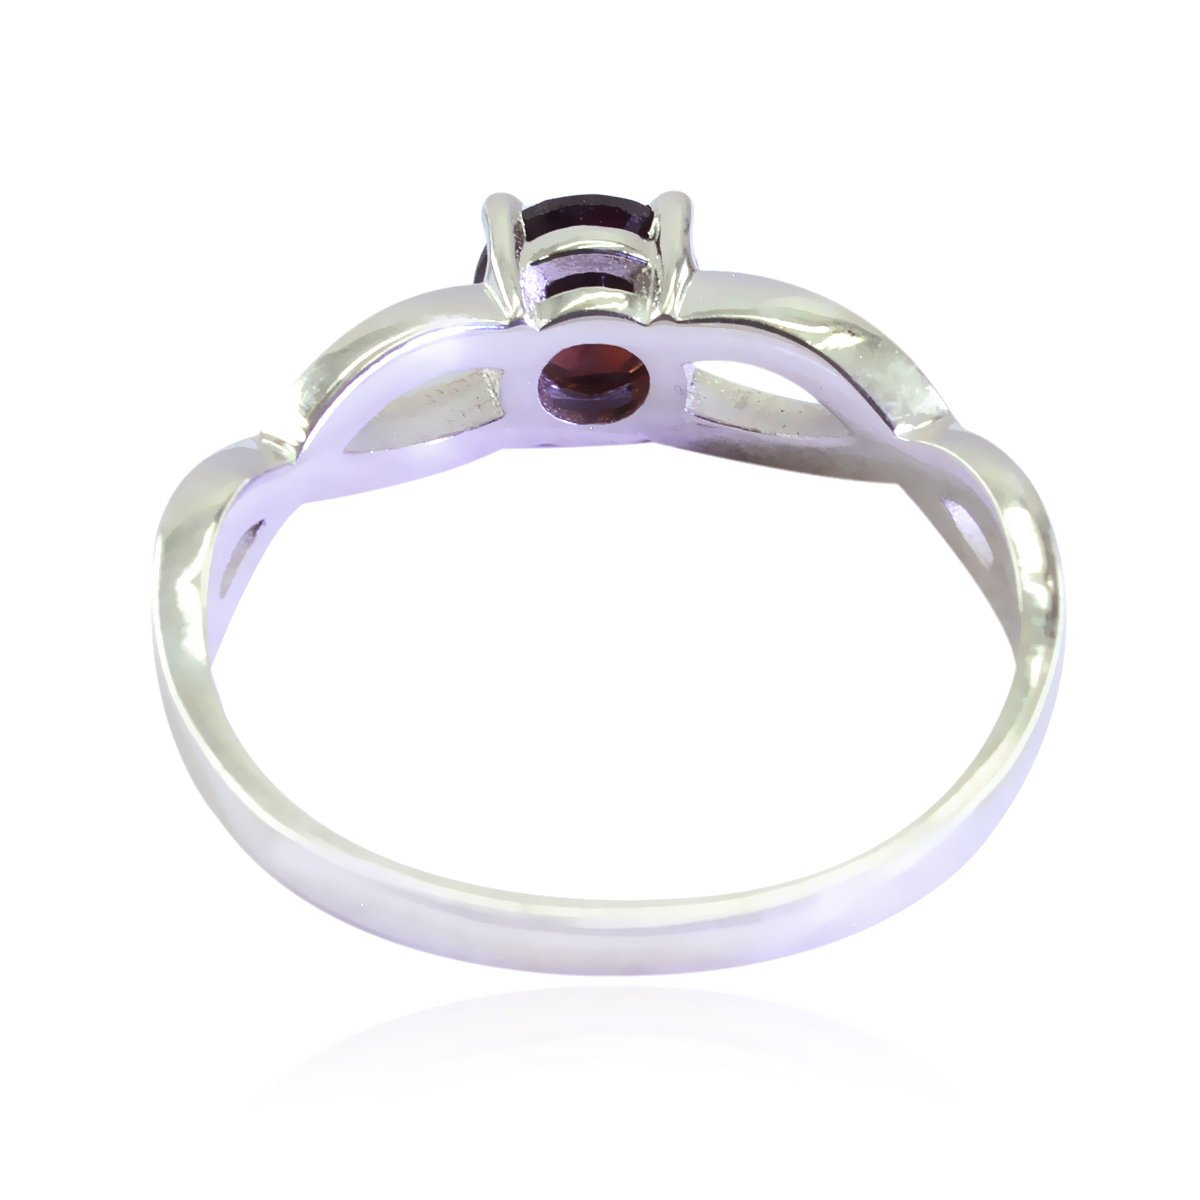 Lucky Gemstone Round Faceted Garnet Ring fine Jewellery Shops Gift for Mothers Day Initial Ring Sterling Silver Red Garnet Lucky Gemstone Ring